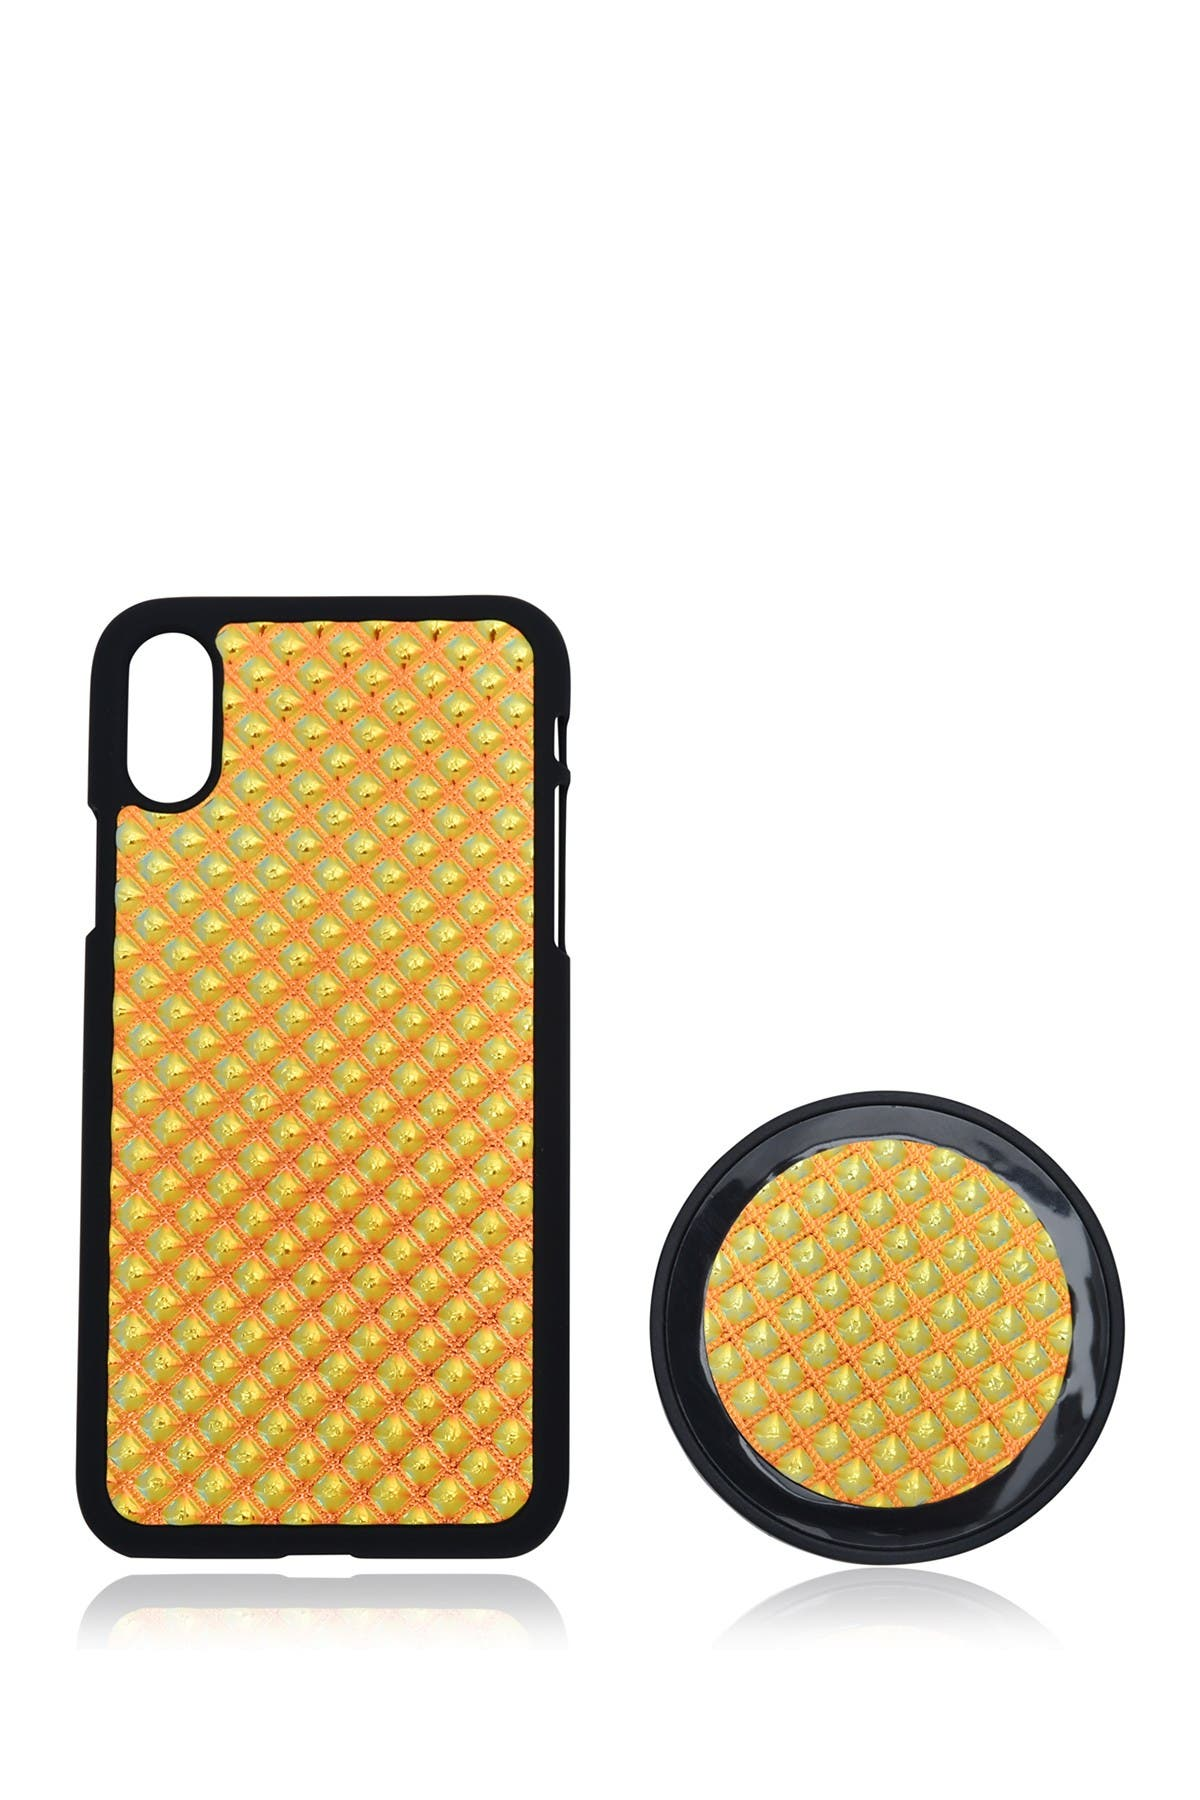 Image of Tech Essentials iPhone X Case Wireless Charging Pad 2-Piece Set